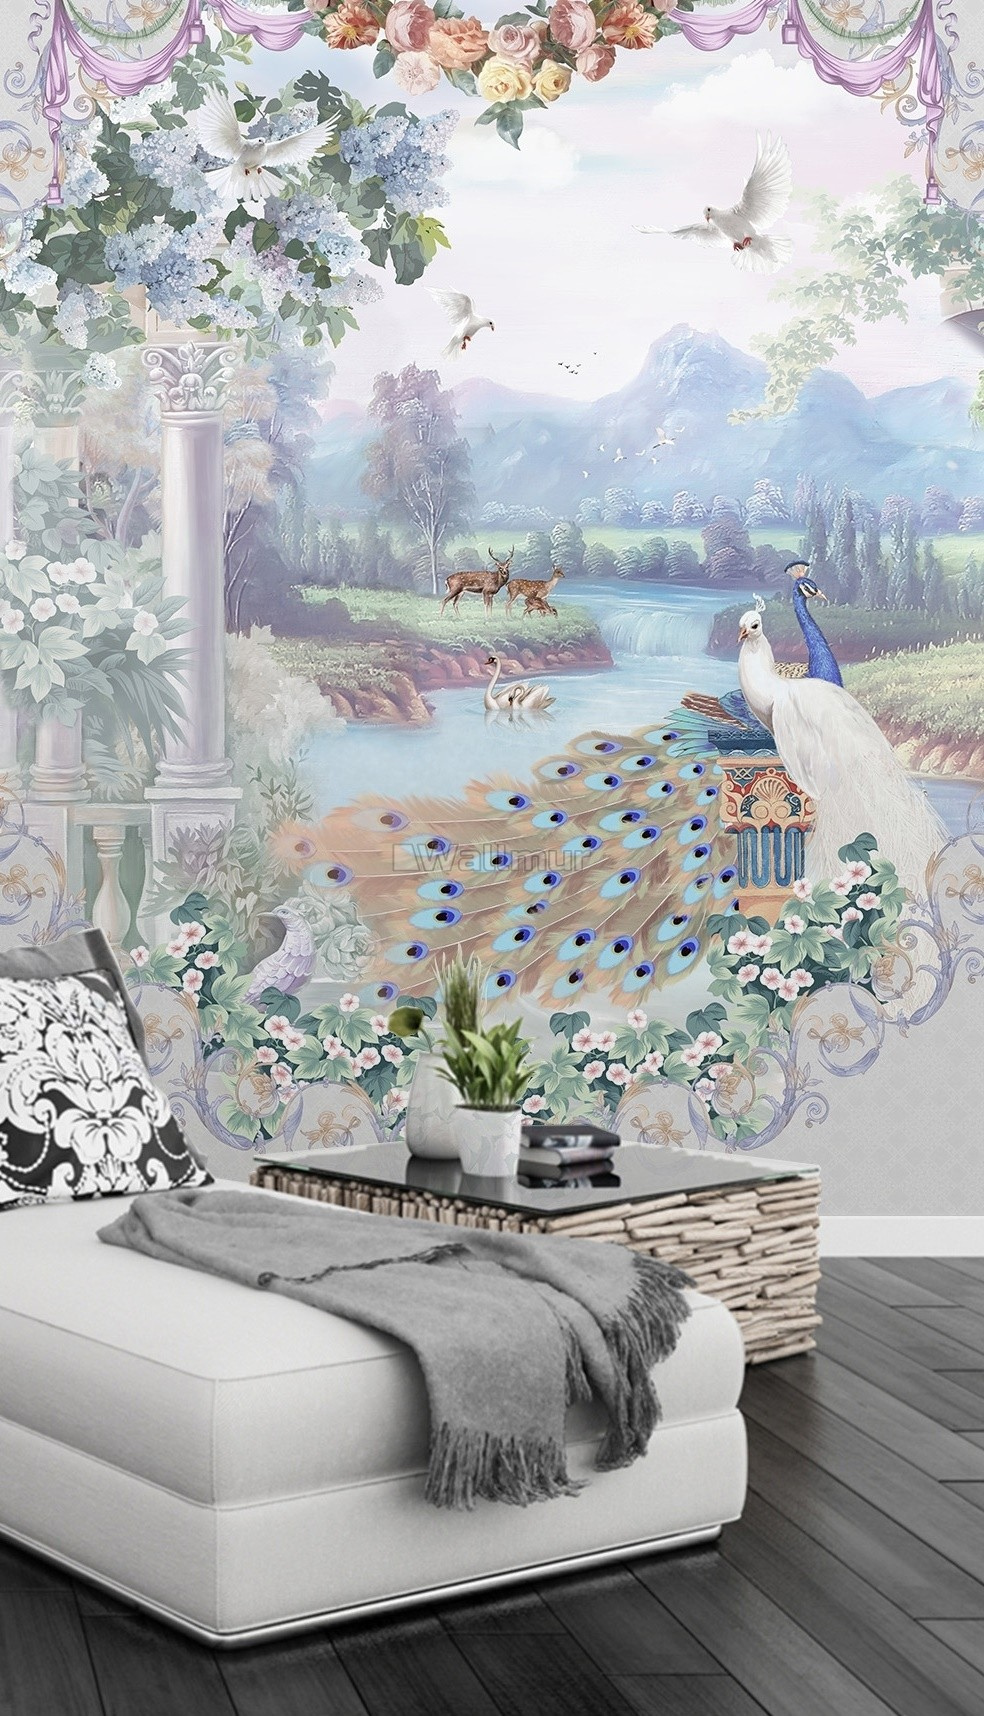 Abstract Lake Landscape and Peacock Wallpaper Mural